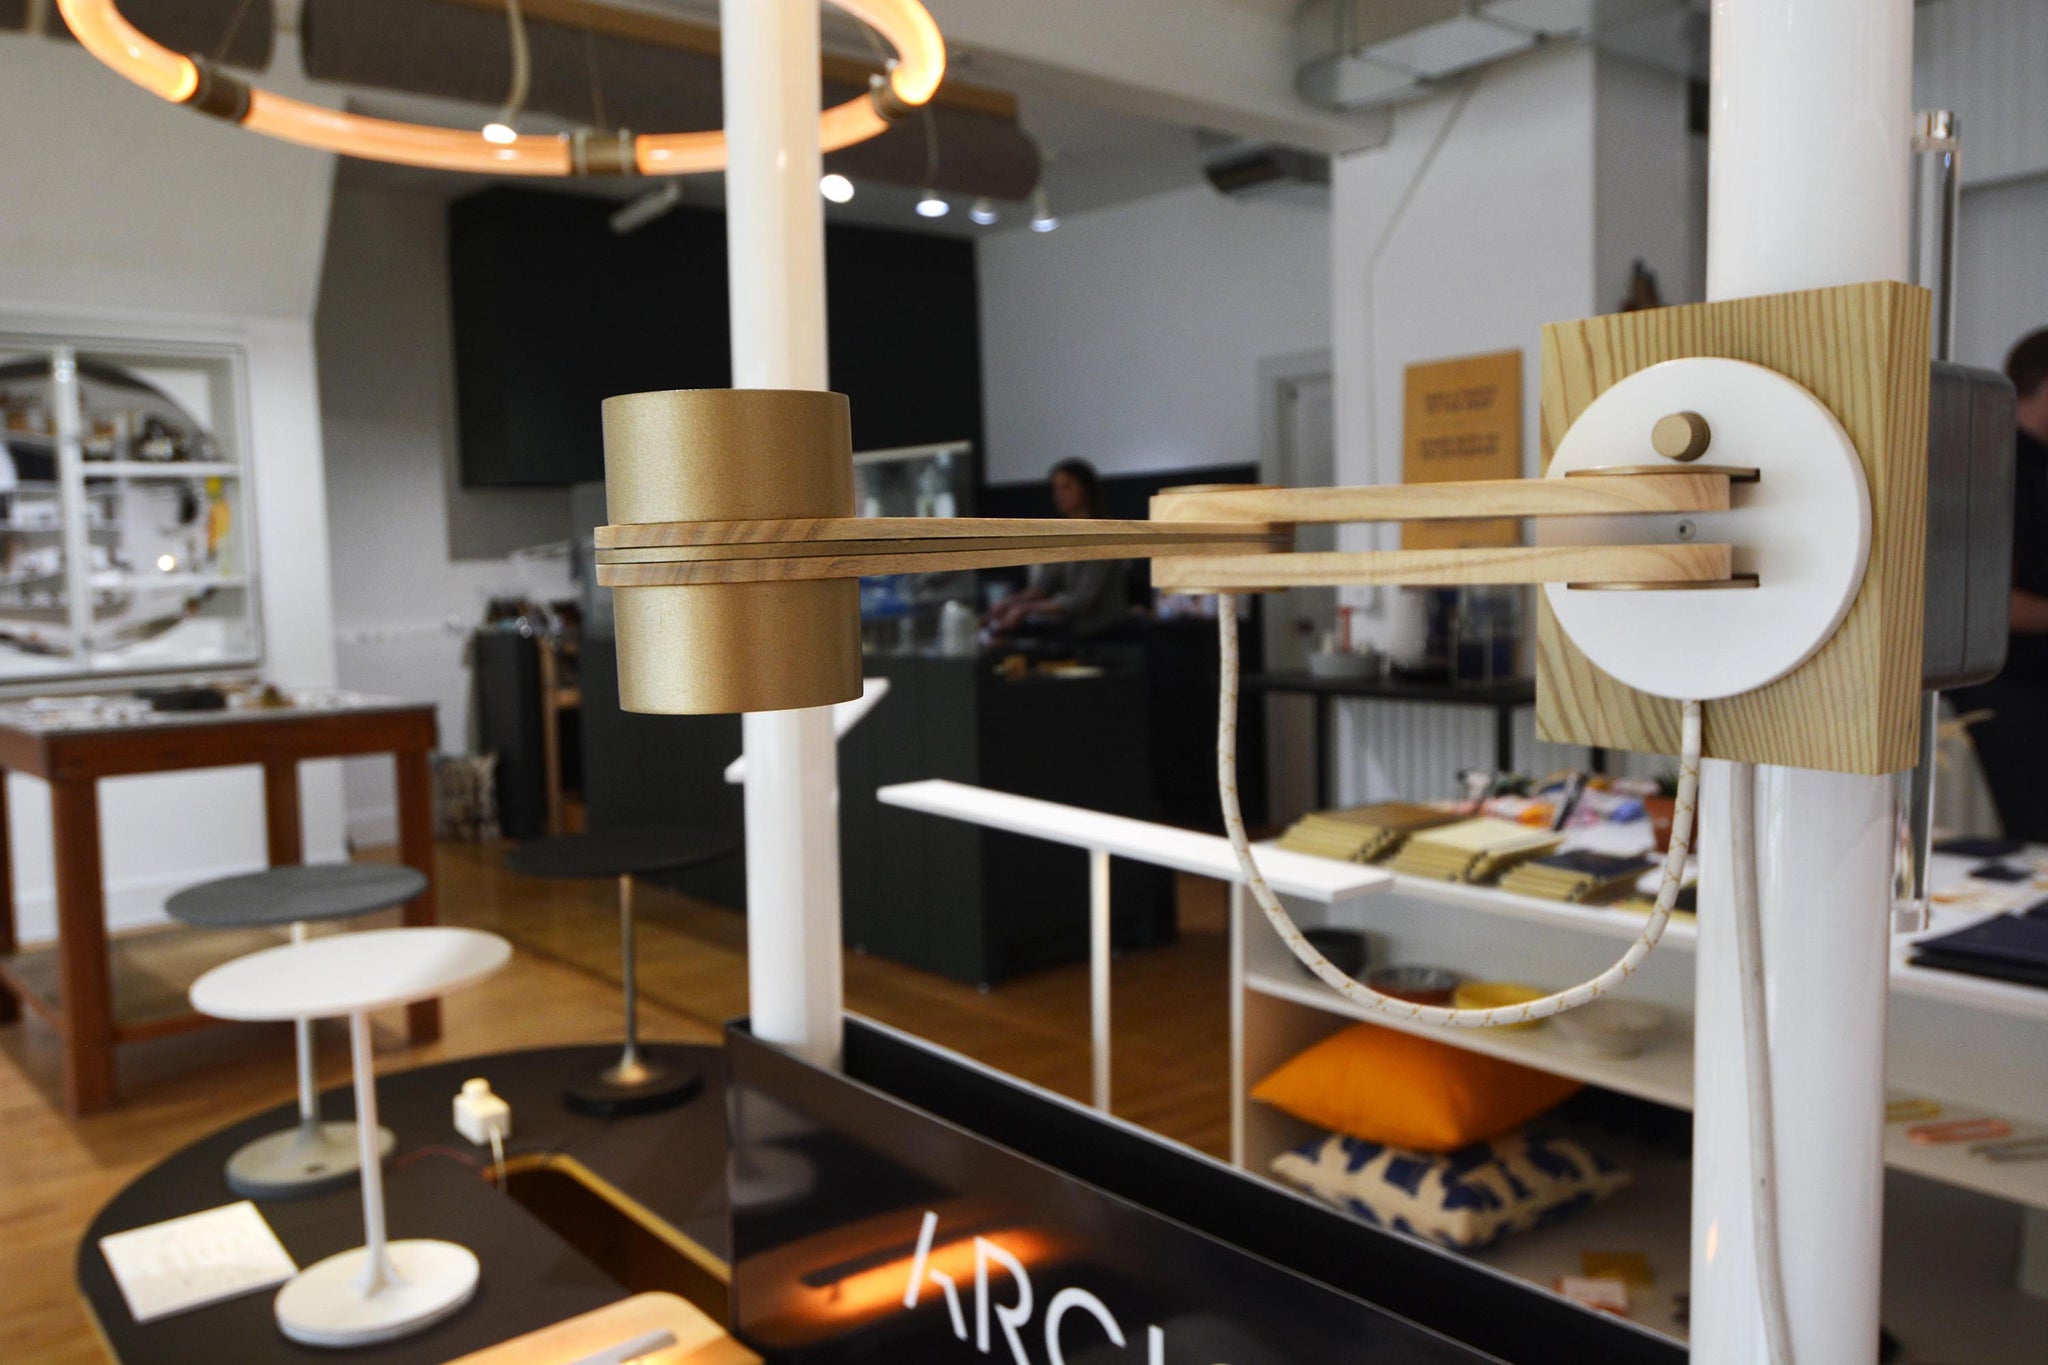 Arcio lighting shows off new wooden sconce prototype.